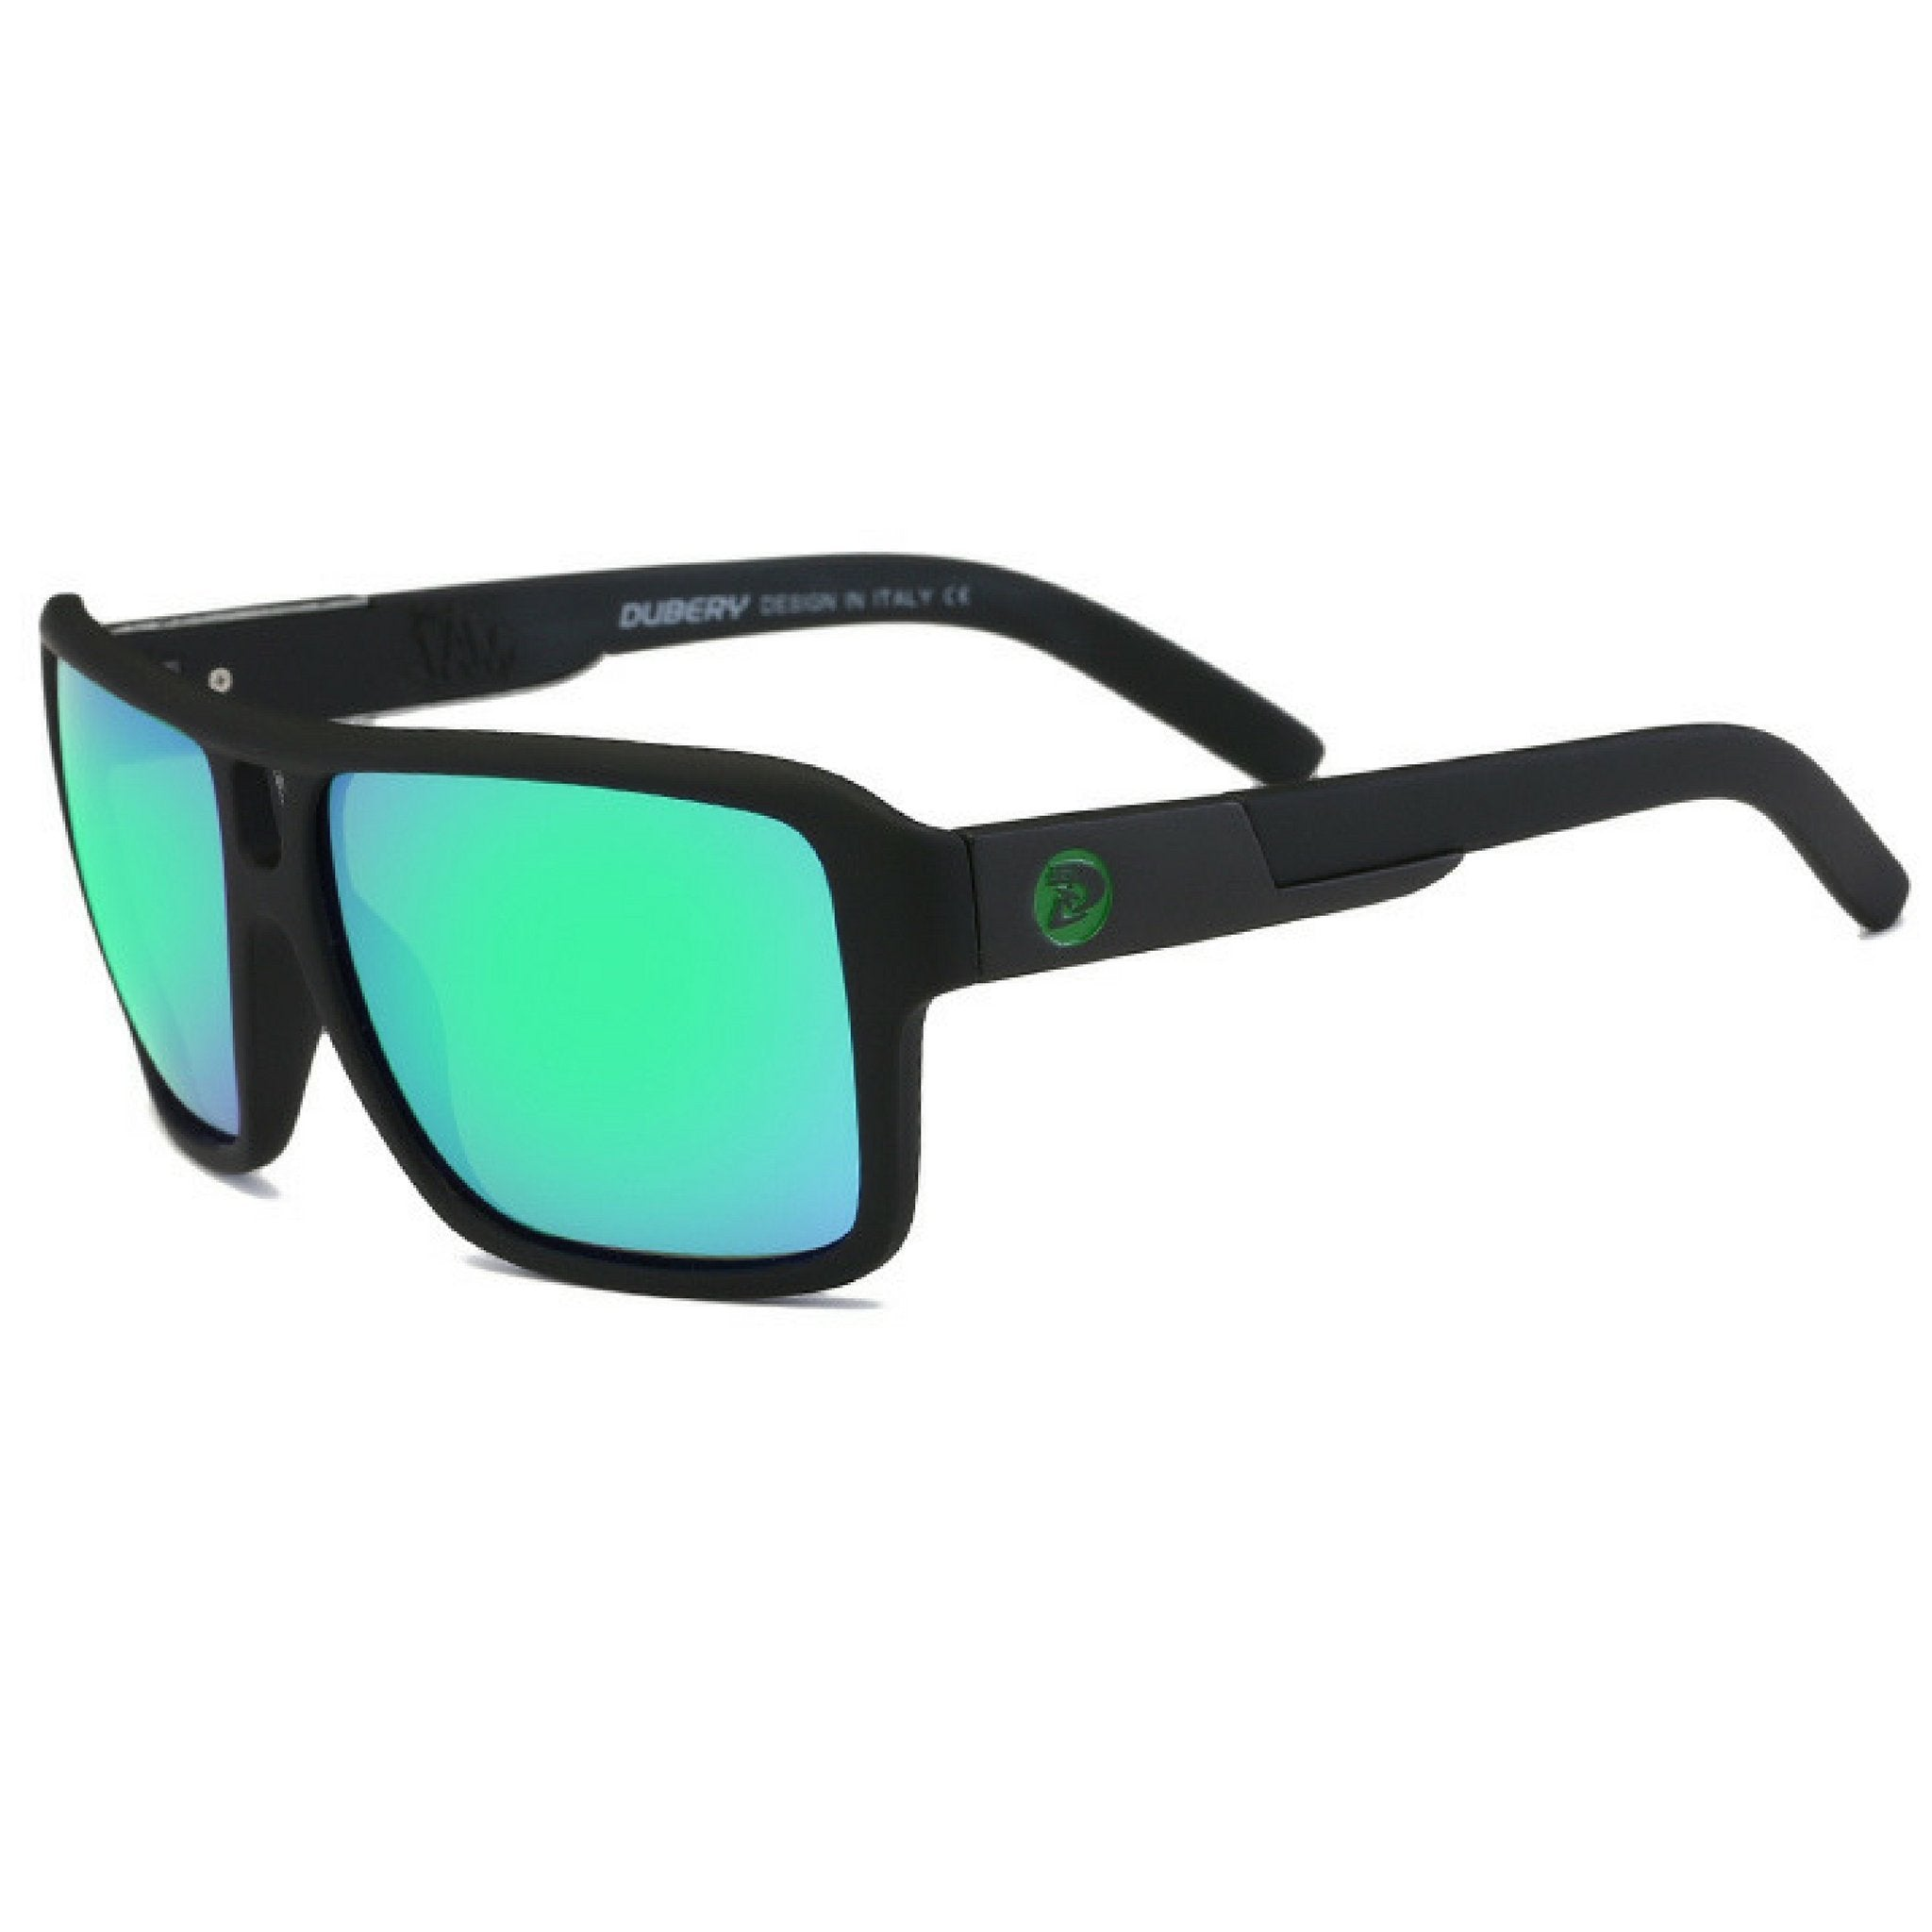 Grizzly Fishing Sunglasses Aqua Sea Seeker Fishing Sunglasses